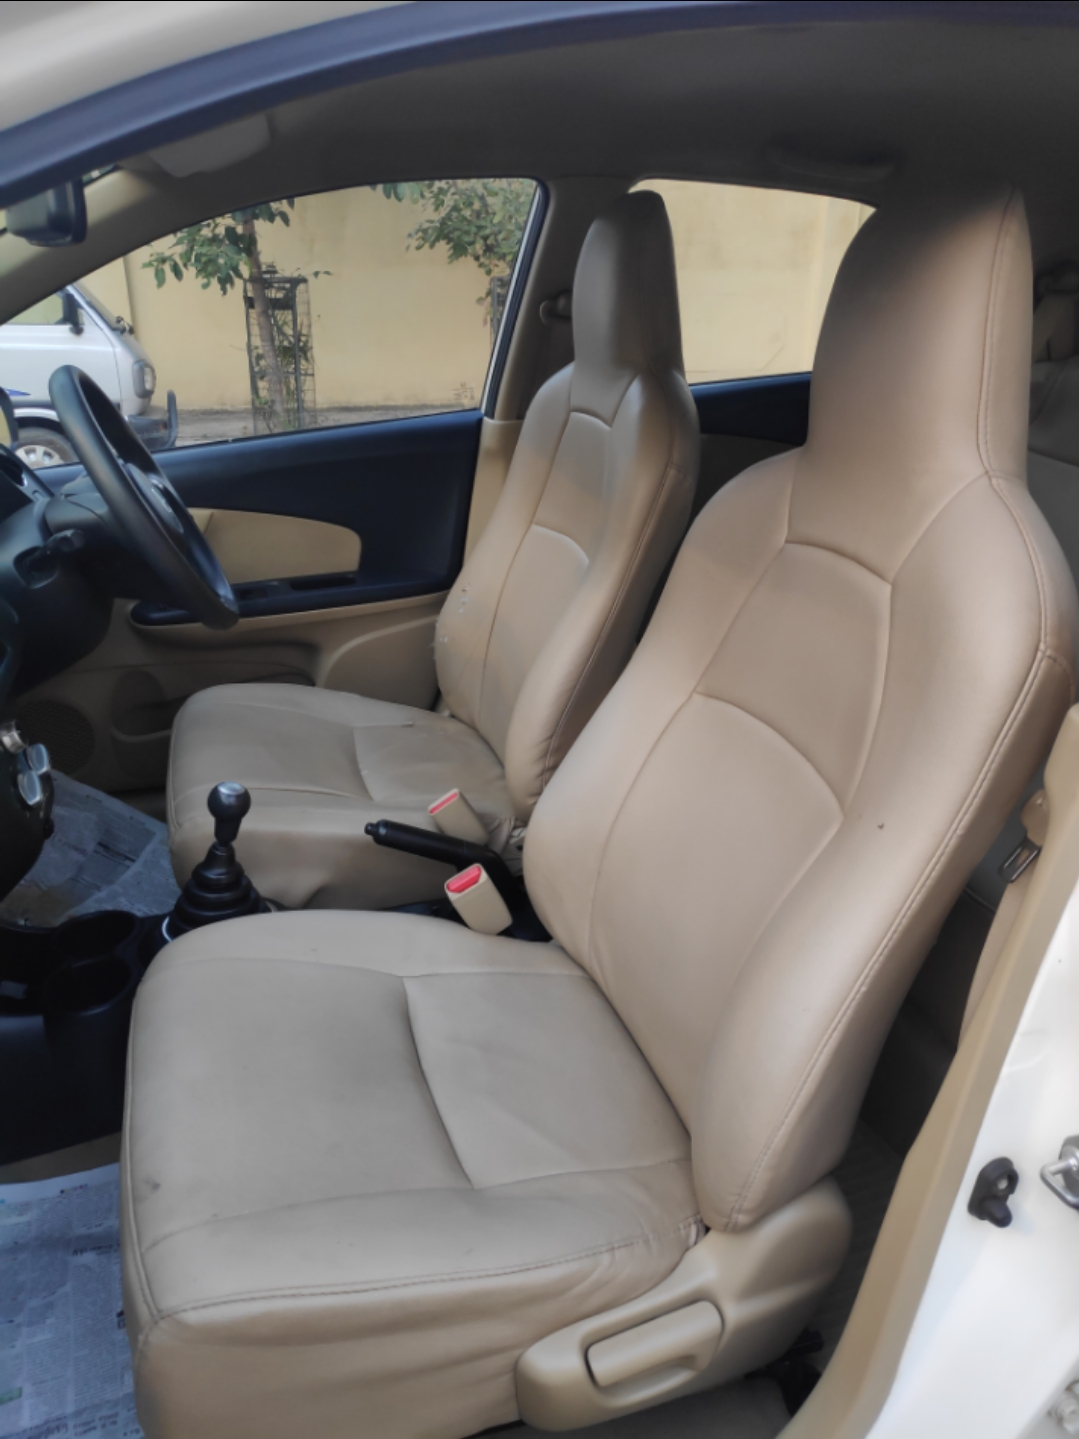 Front_seats 20210204183018